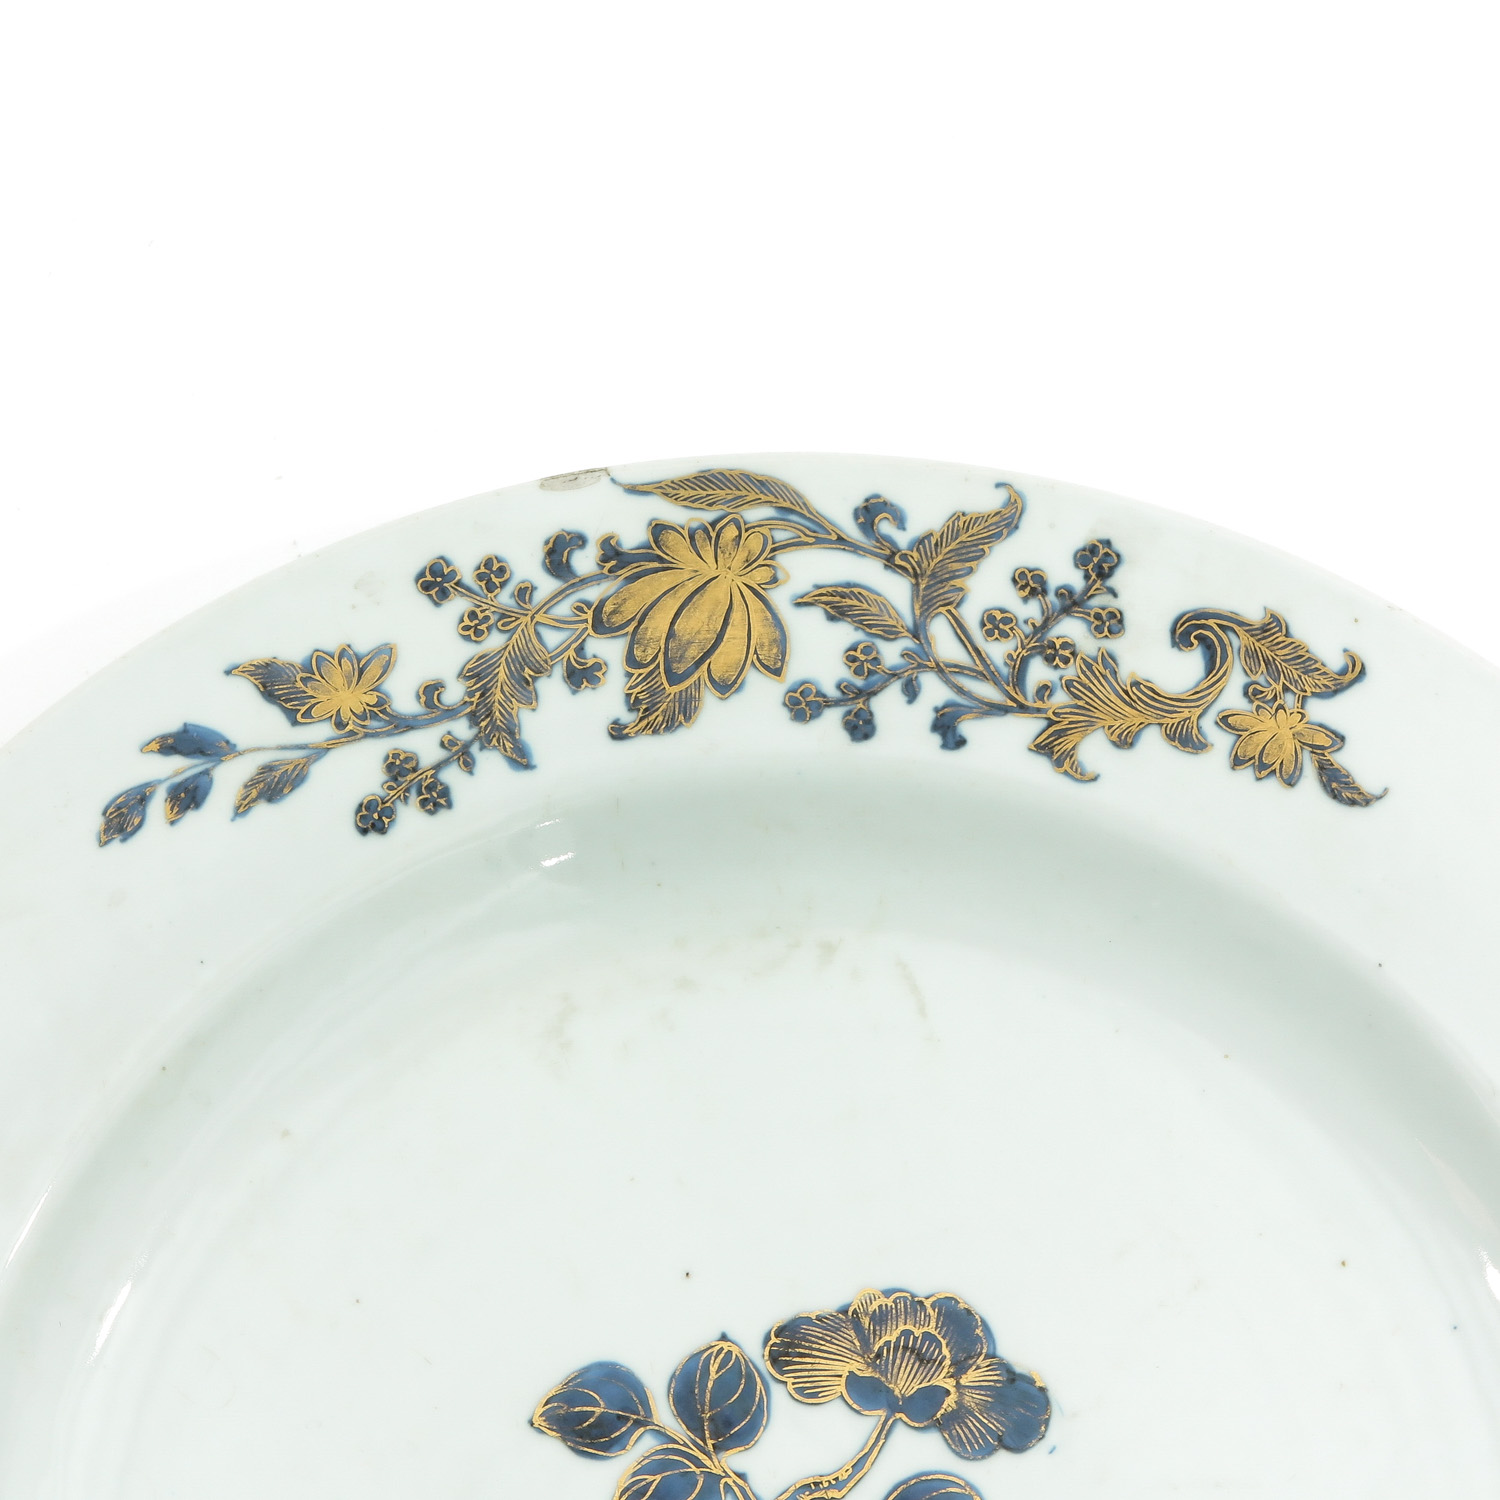 A Blue and Gilt Decor Charger - Image 3 of 6